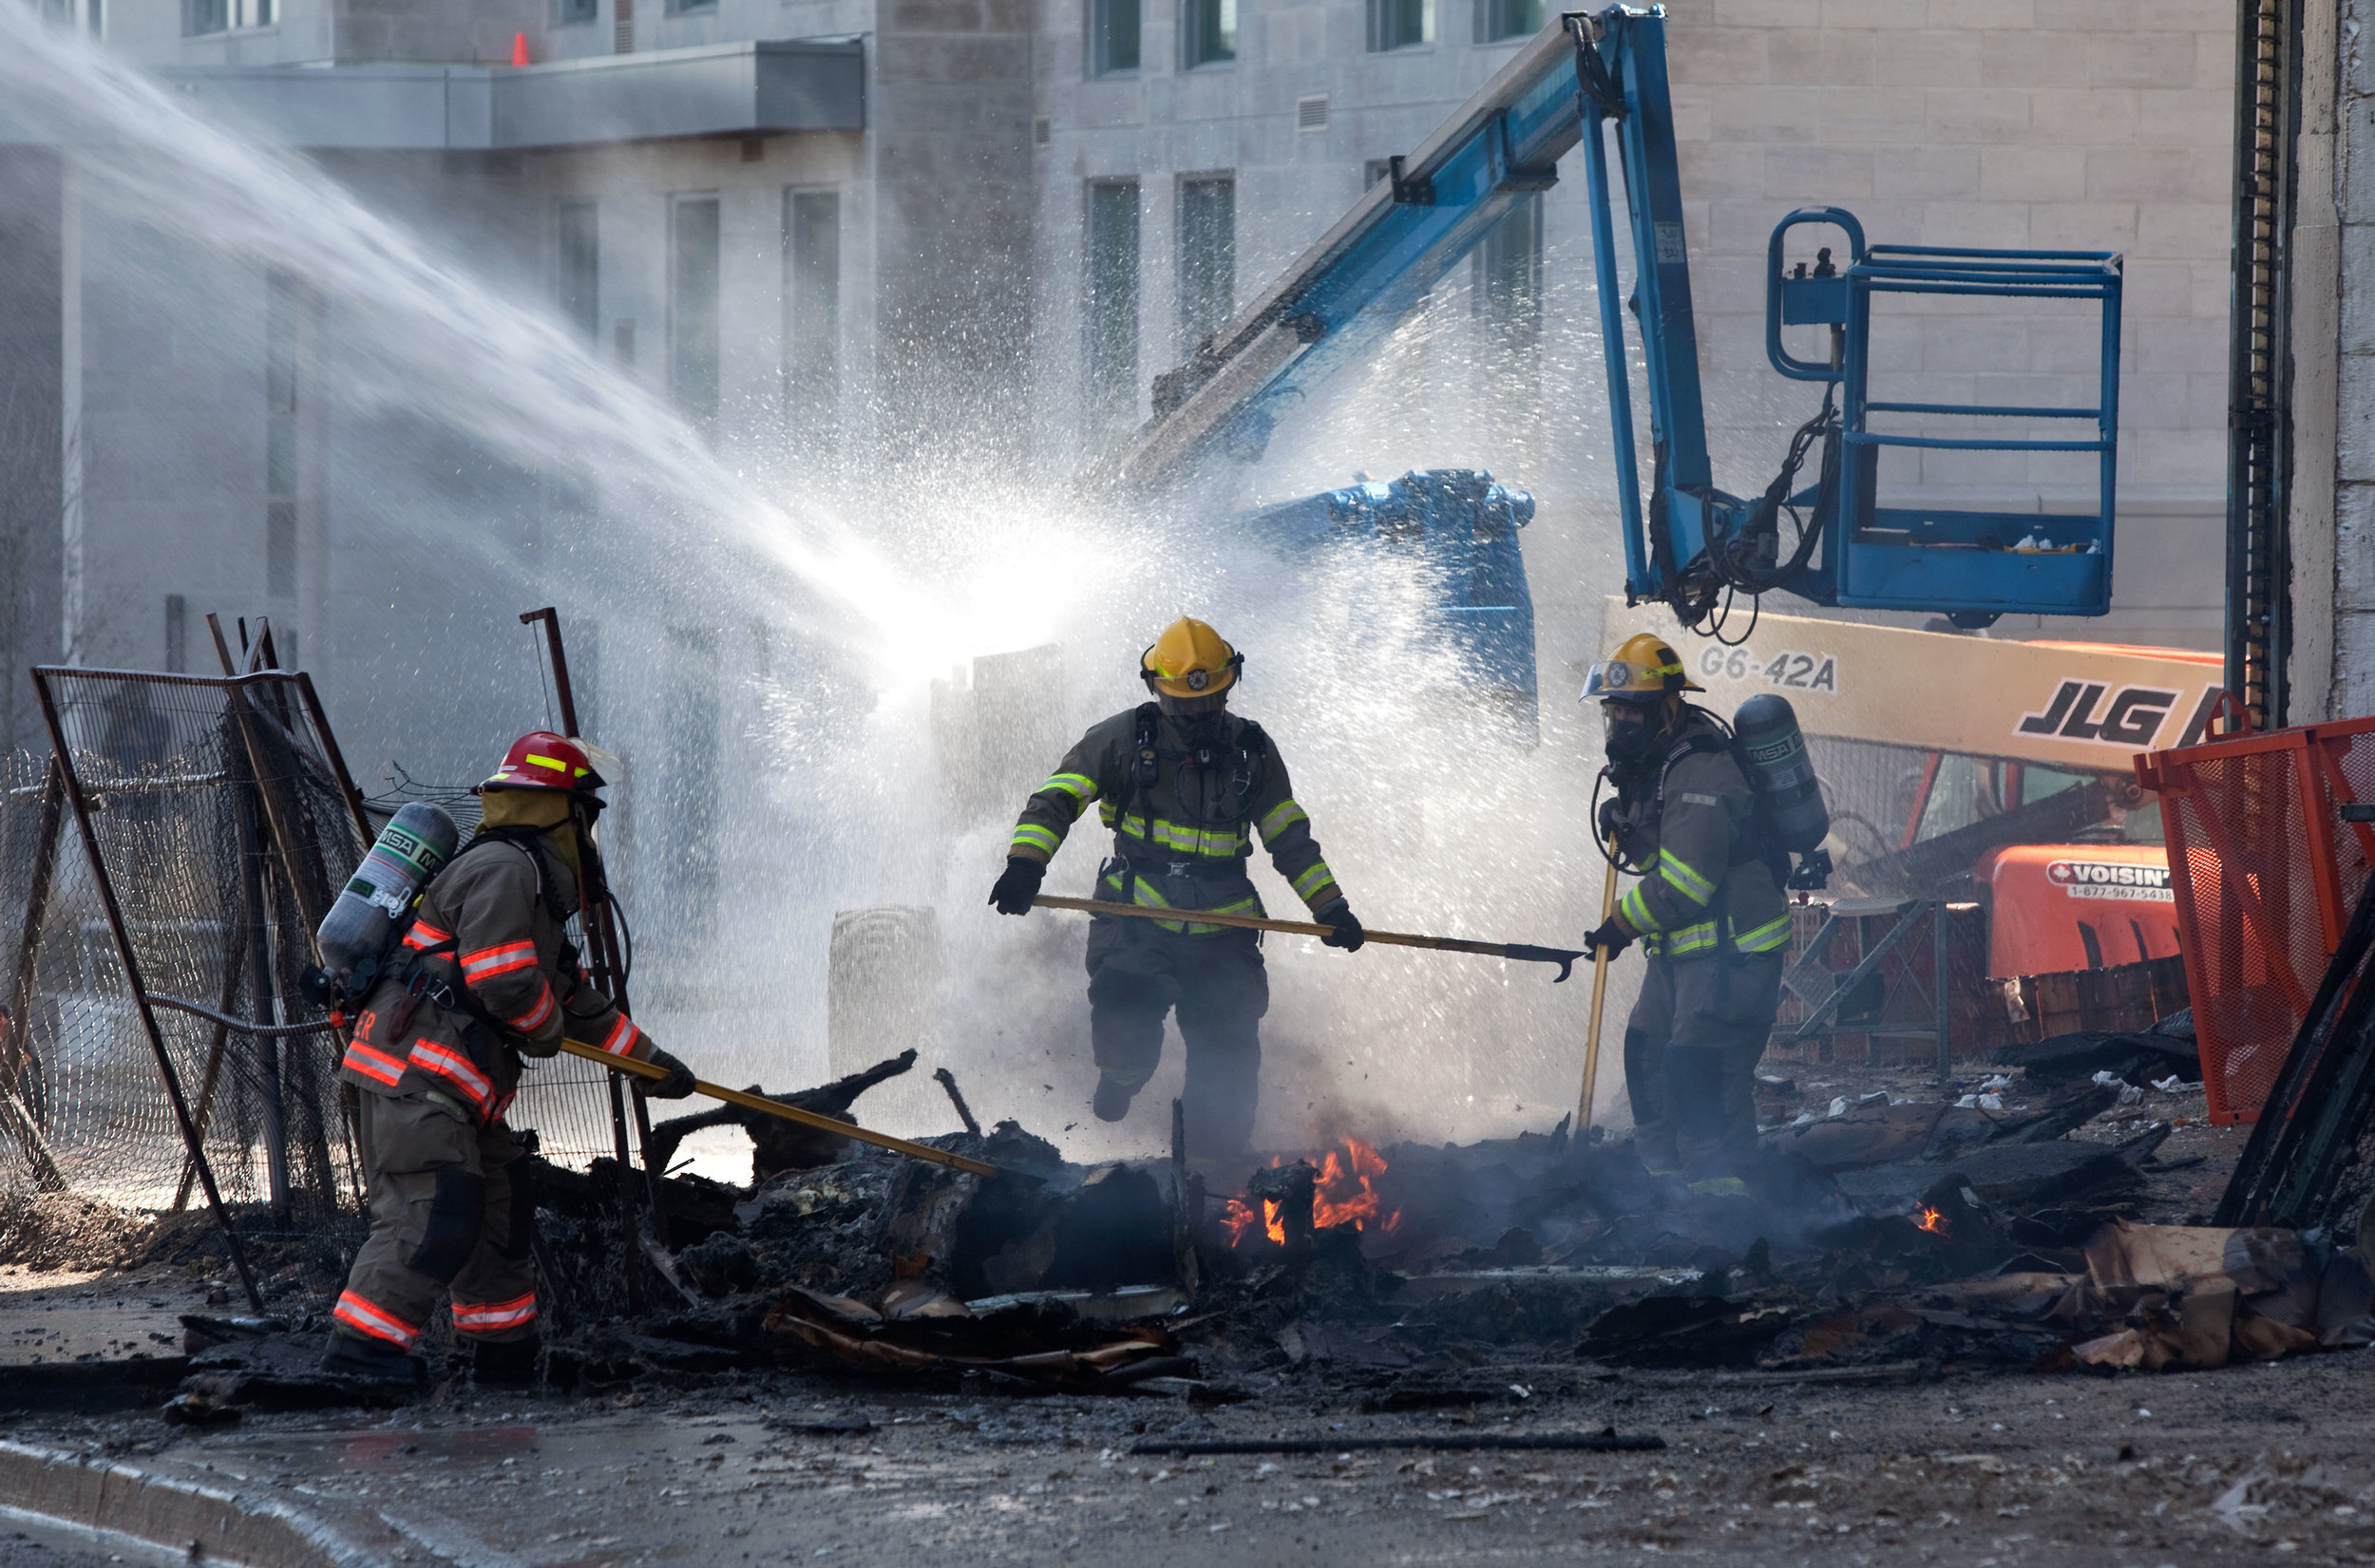 Firefighters finish off a blaze started when a lift overheated andexploded at a construction site in Waterloo.